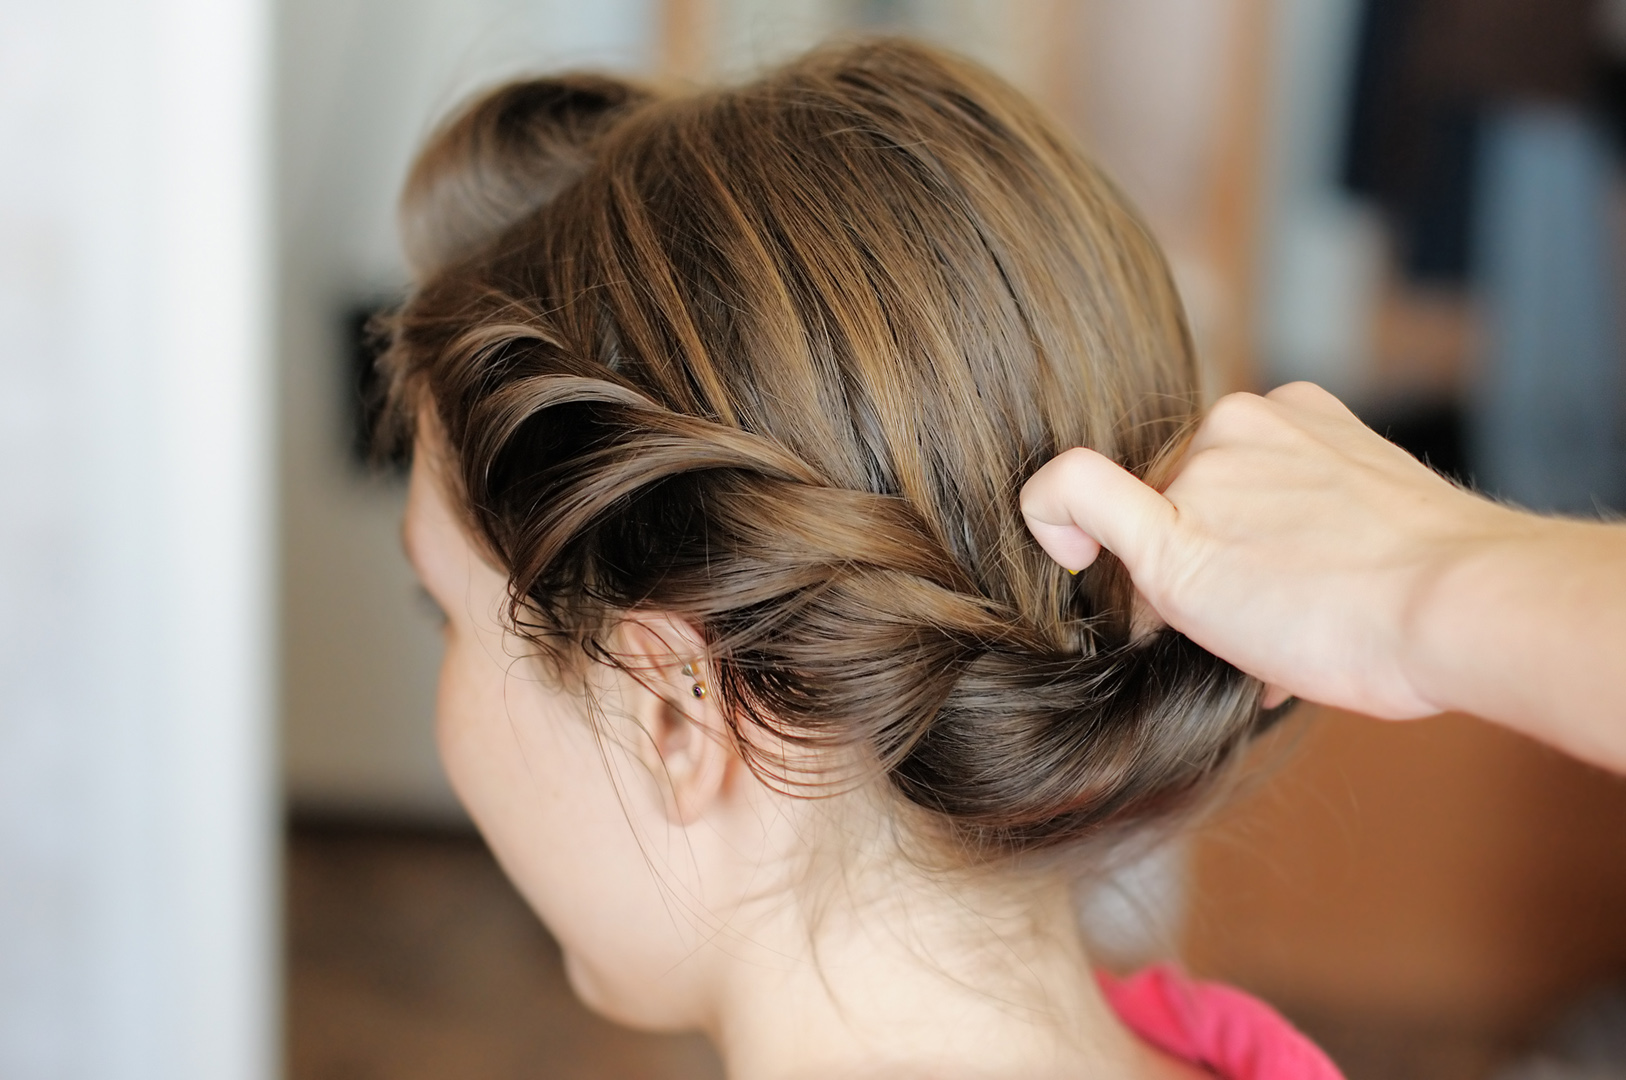 FORMAL HAIR STYLING & UPDOS